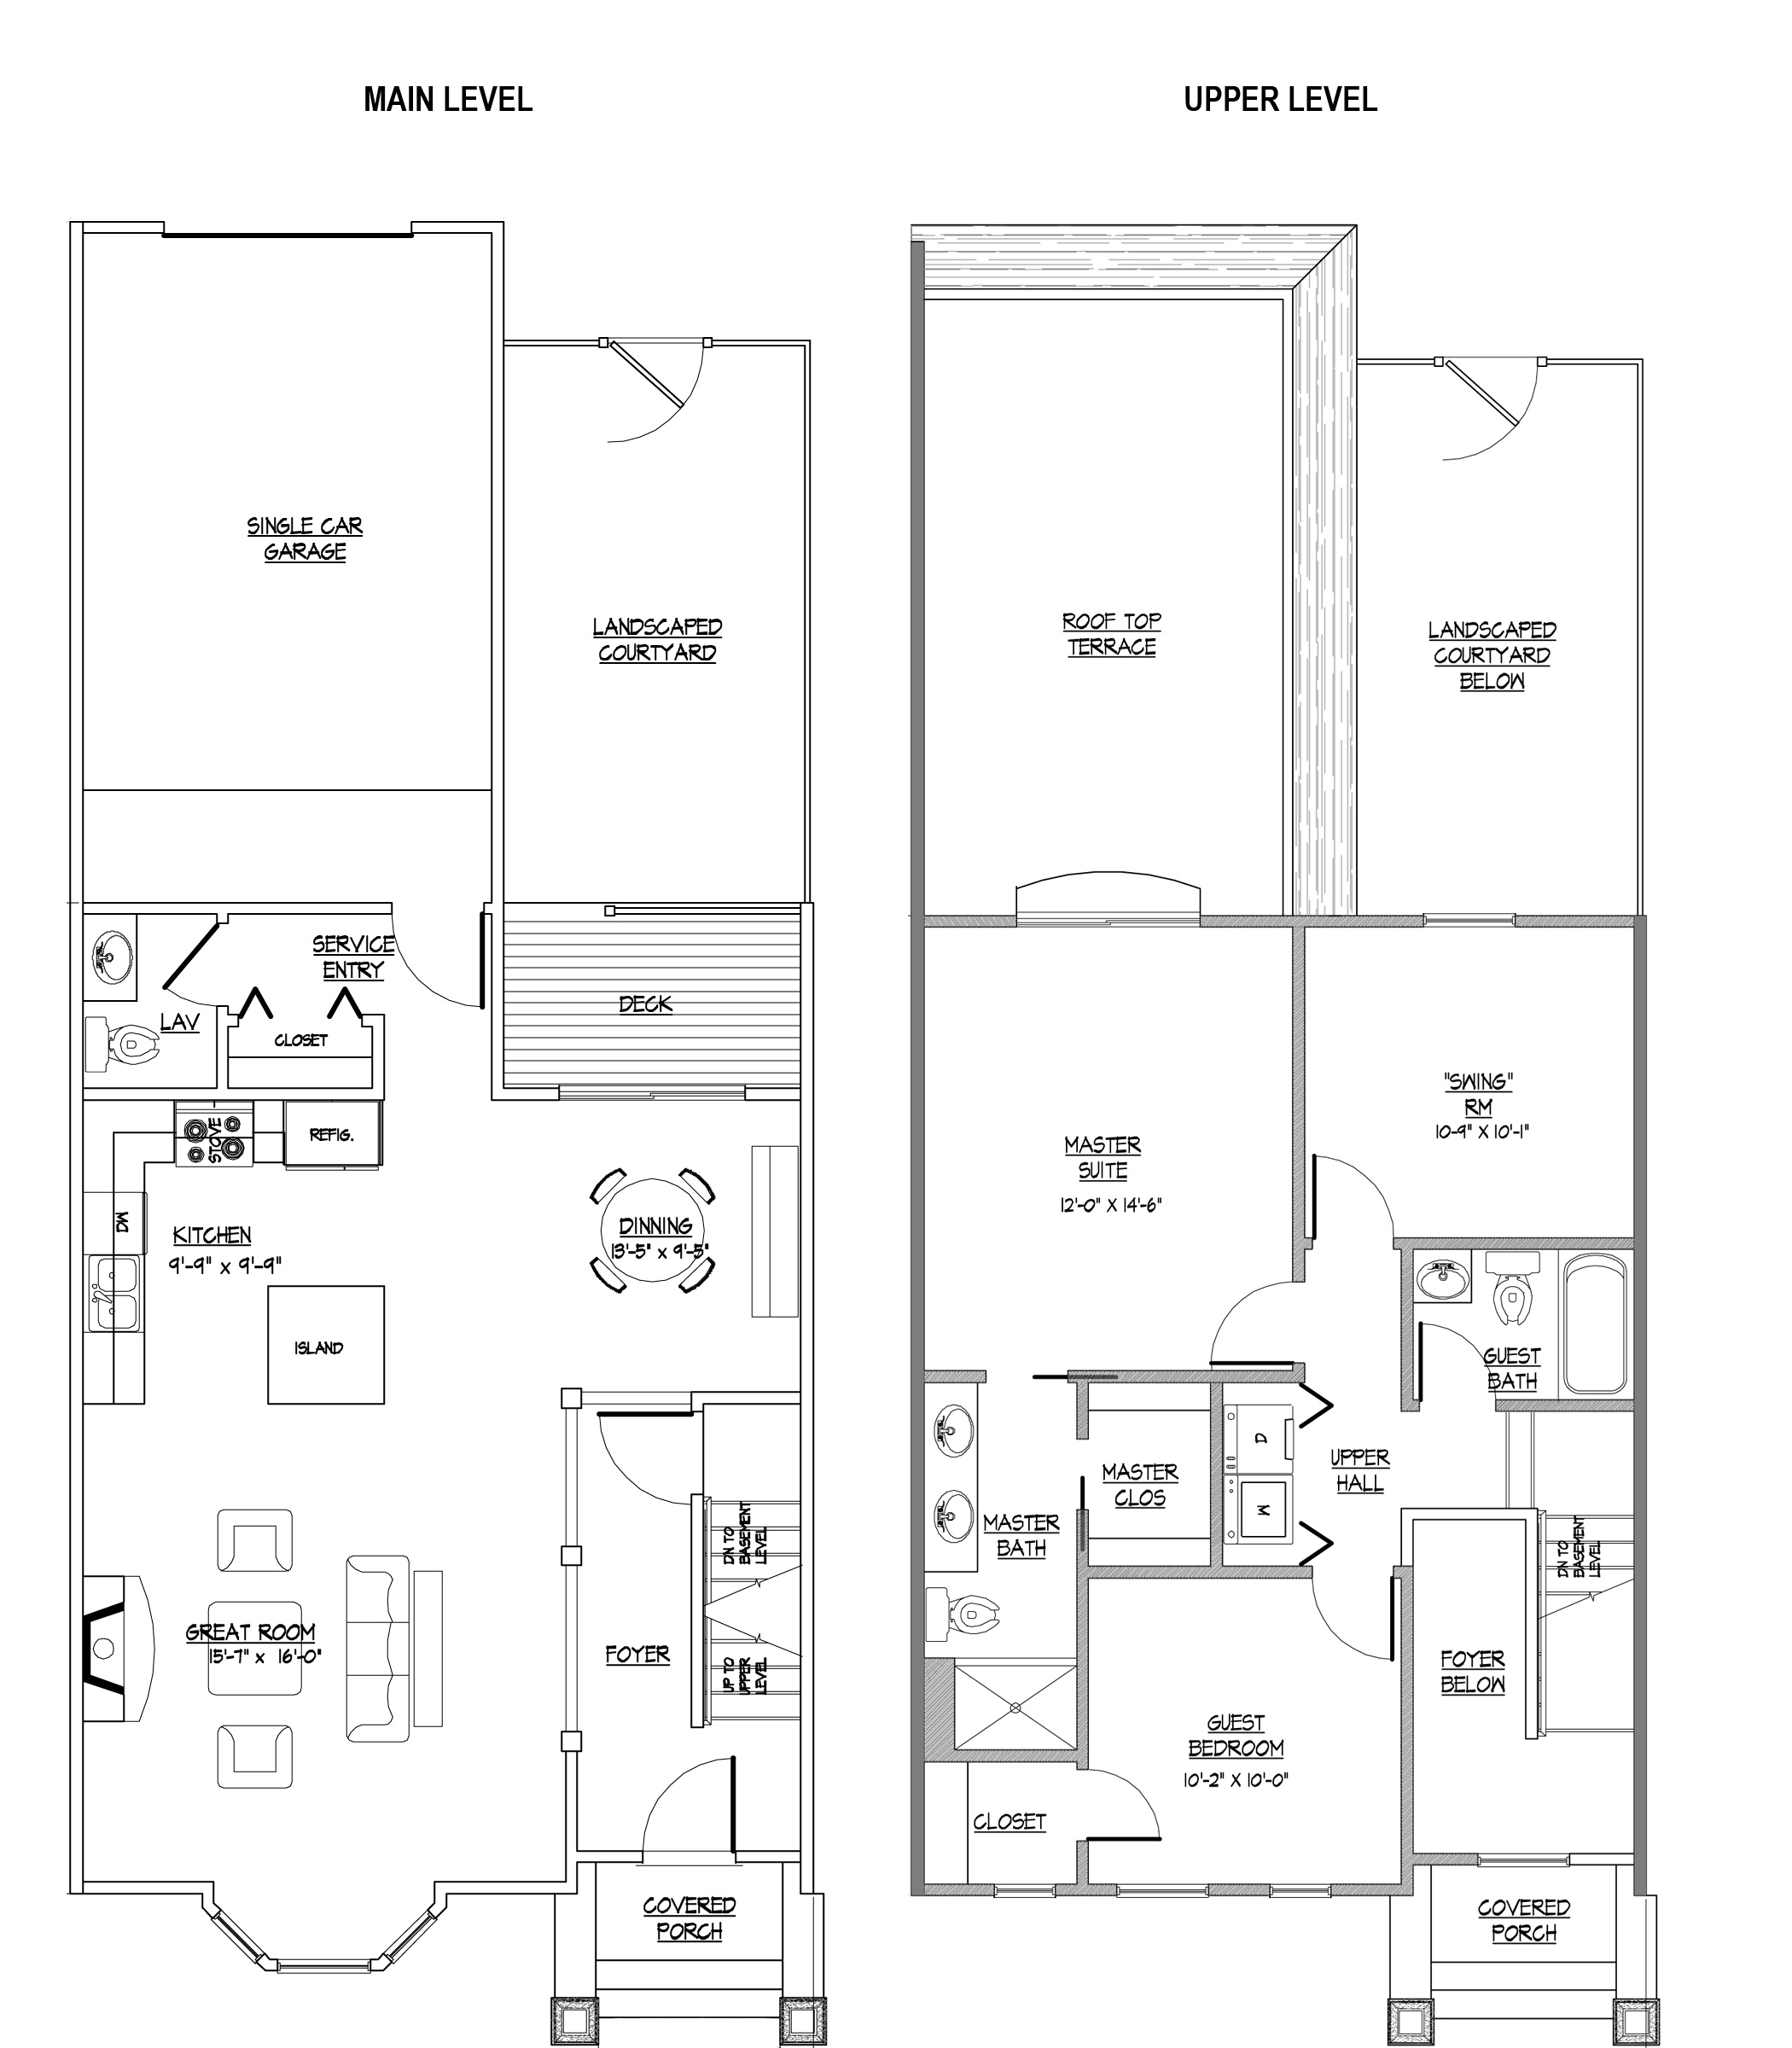 Master Suite Floor Plans; Enjoy Comfortable Residence With Master Suite: Modern Main Level An Upper Level Master Suite Floor Plans Ideas